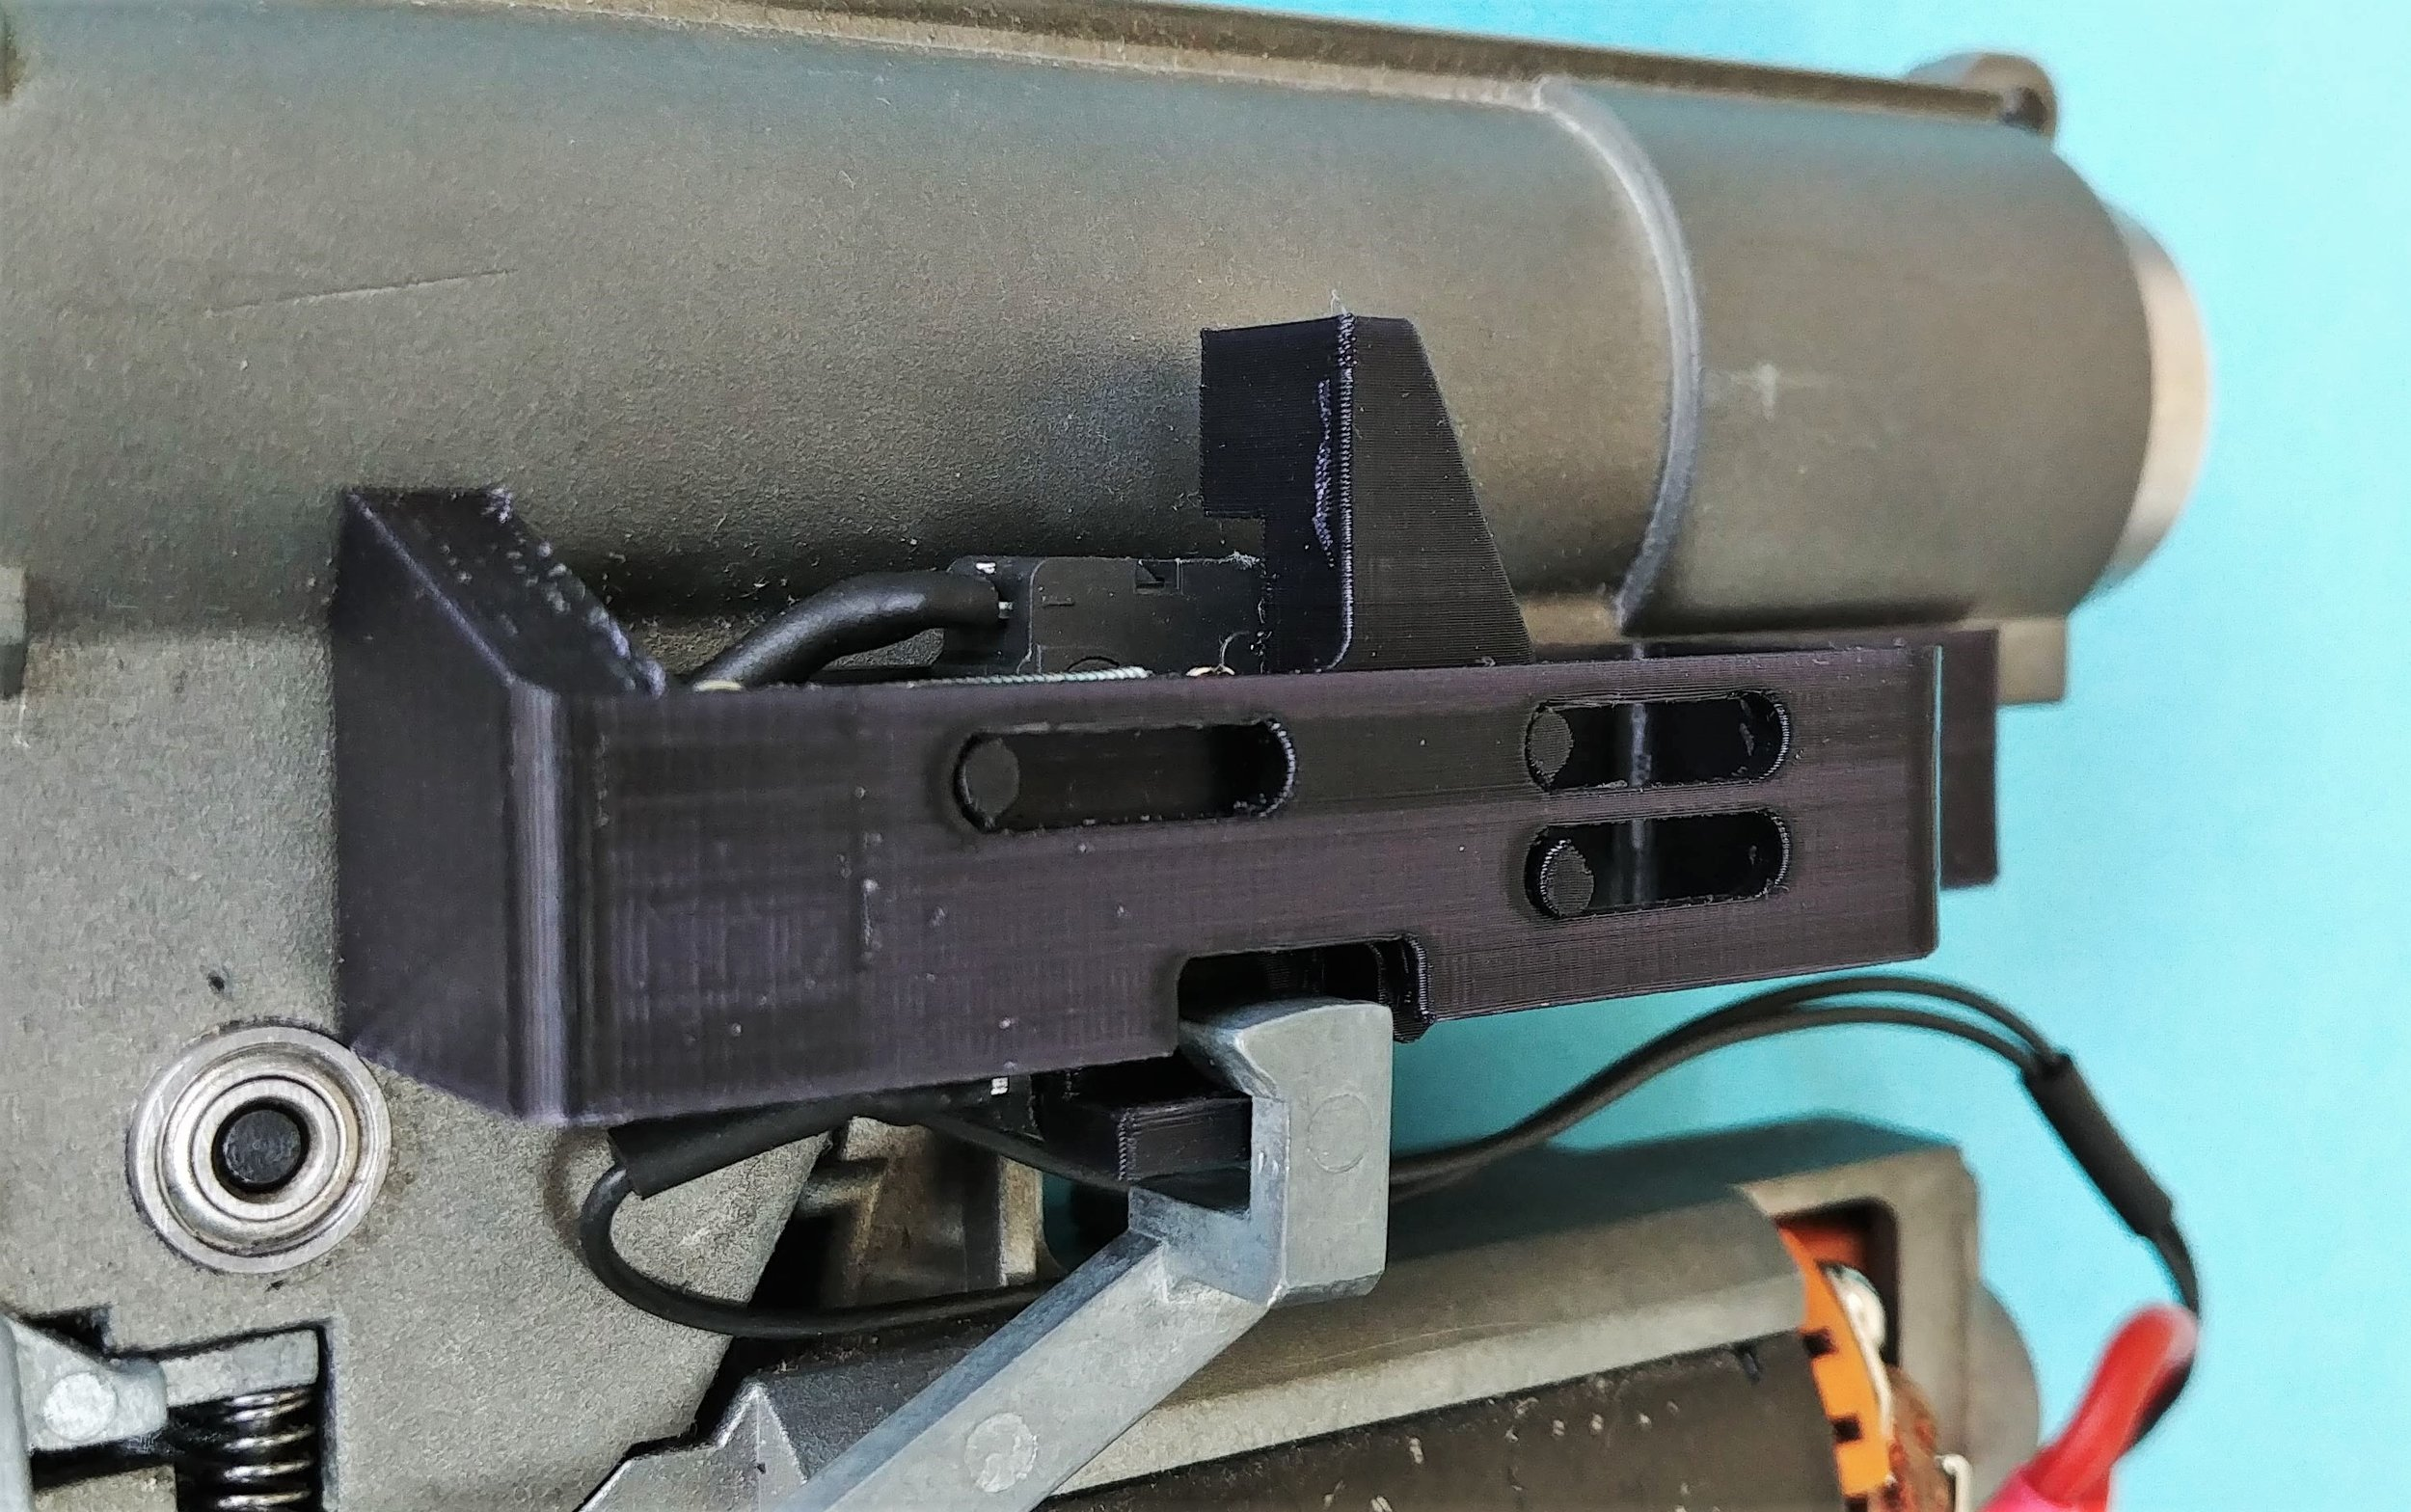 Cut off lever should align with face of trigger piece, not pull it down nor have a gap